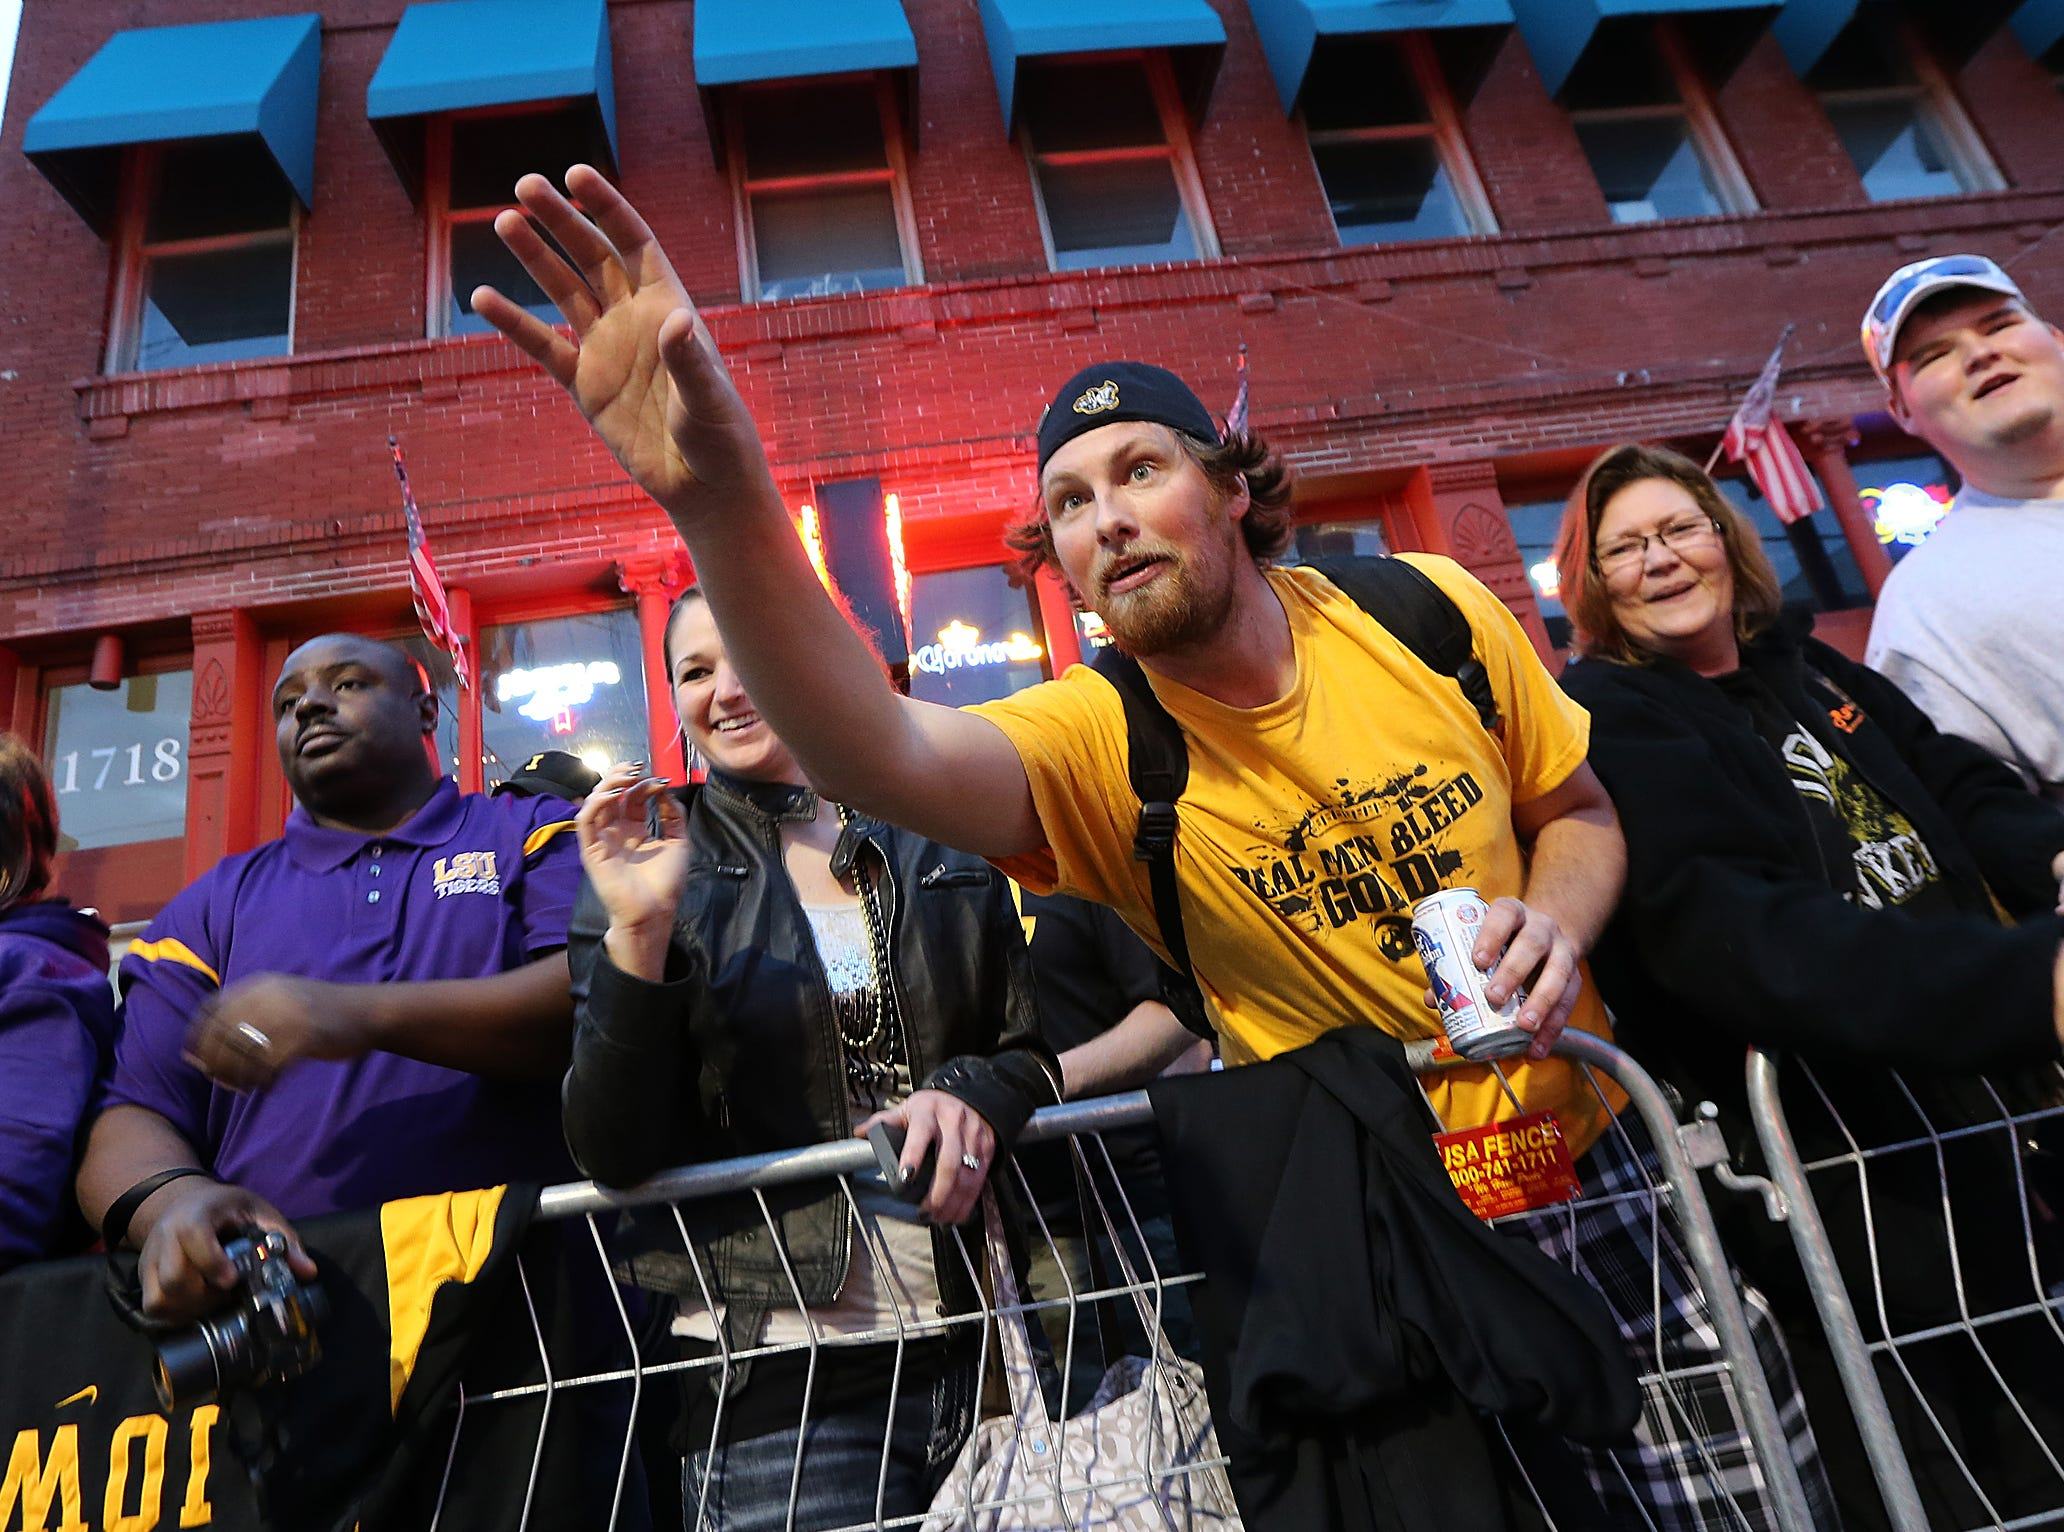 Jim Stephens, a Hawkeye fan from Omaha, reaches out to receive some beads being tossed by parade walkers during the Outback Bowl parade on Tuesday, Dec. 31, 2013, in Tampa, Florida. (Bryon Houlgrave/The Register)